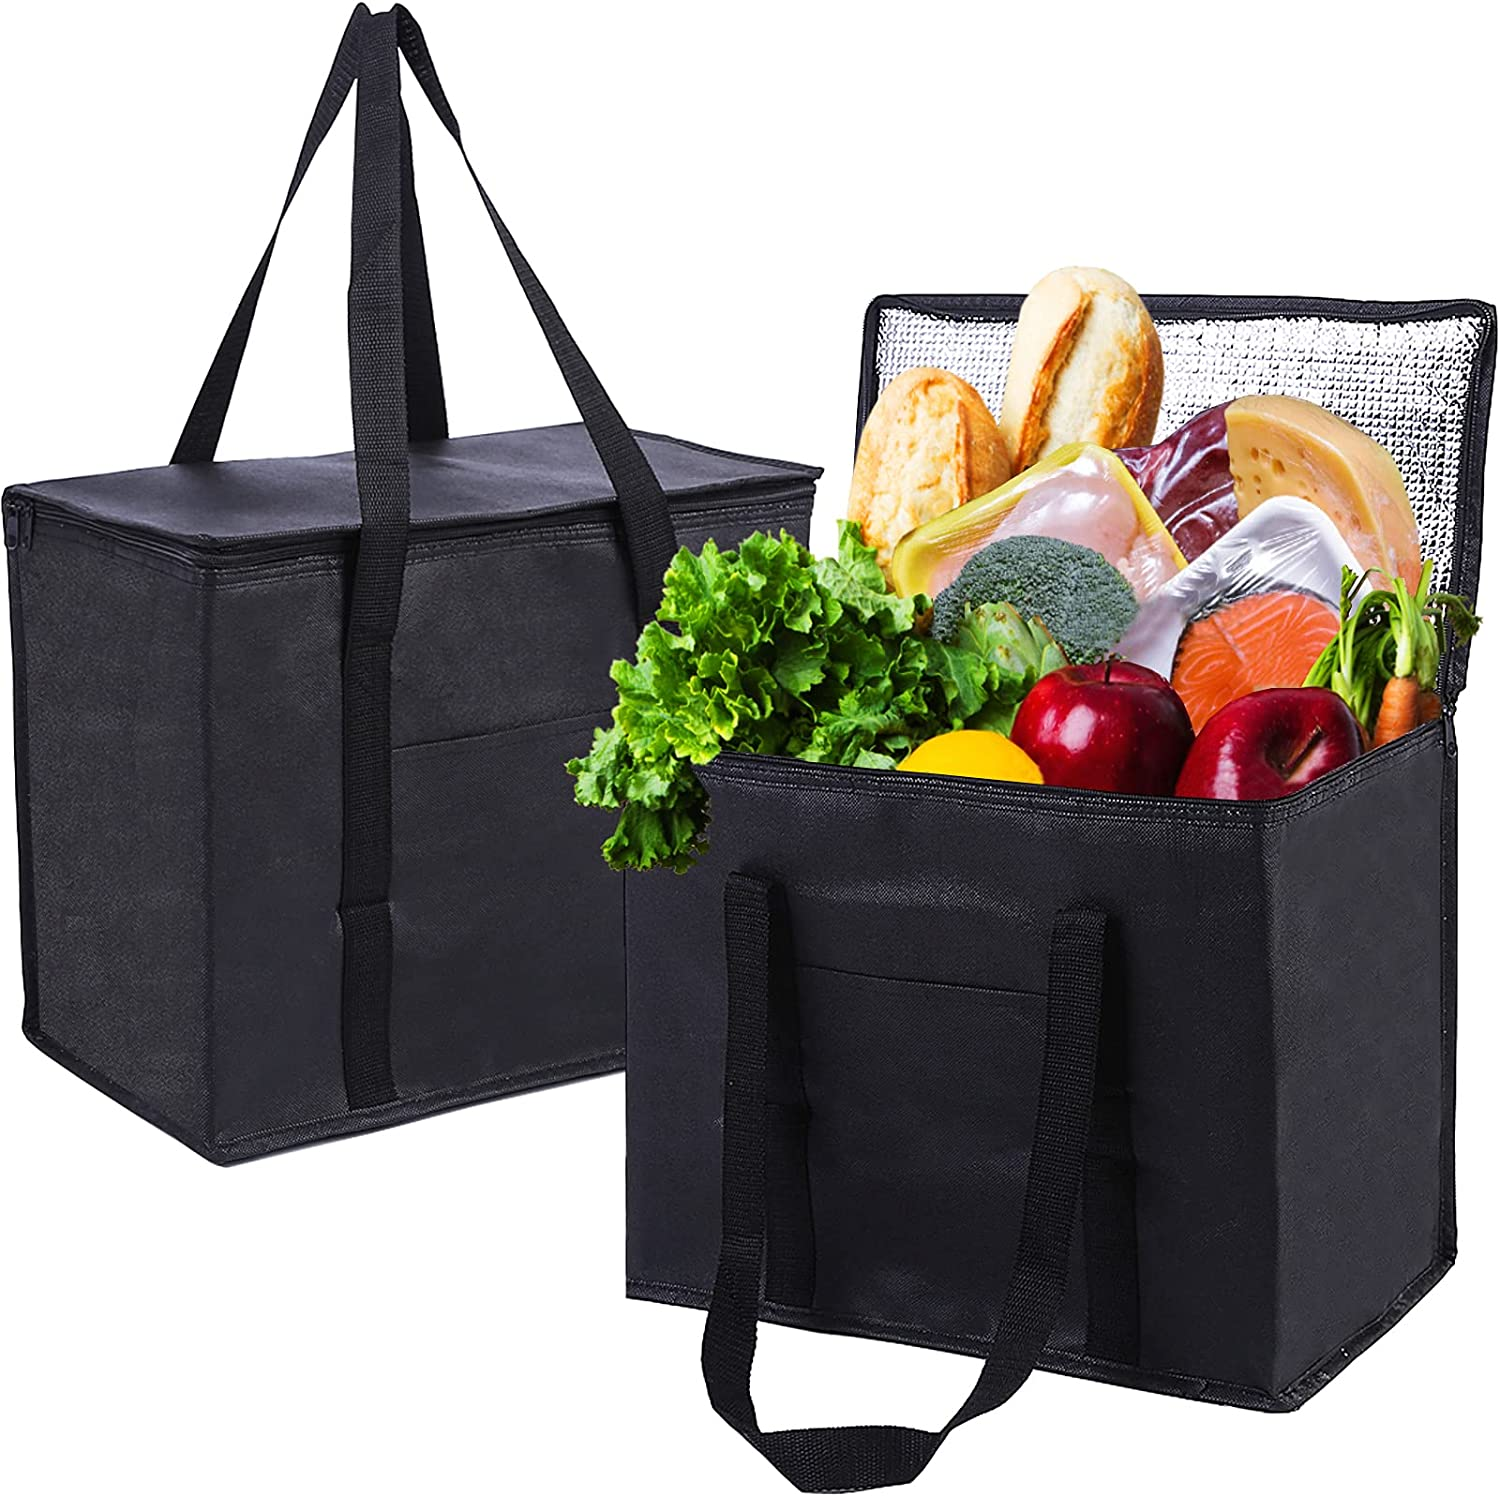 Insulated Bag for Food Delivery& Transport, Reusable Shopping Bags for Groceries Heavy Duty, X-Large Insulated Cooler Bag Produce Bag Collapsible with Strong Handle& Zipper